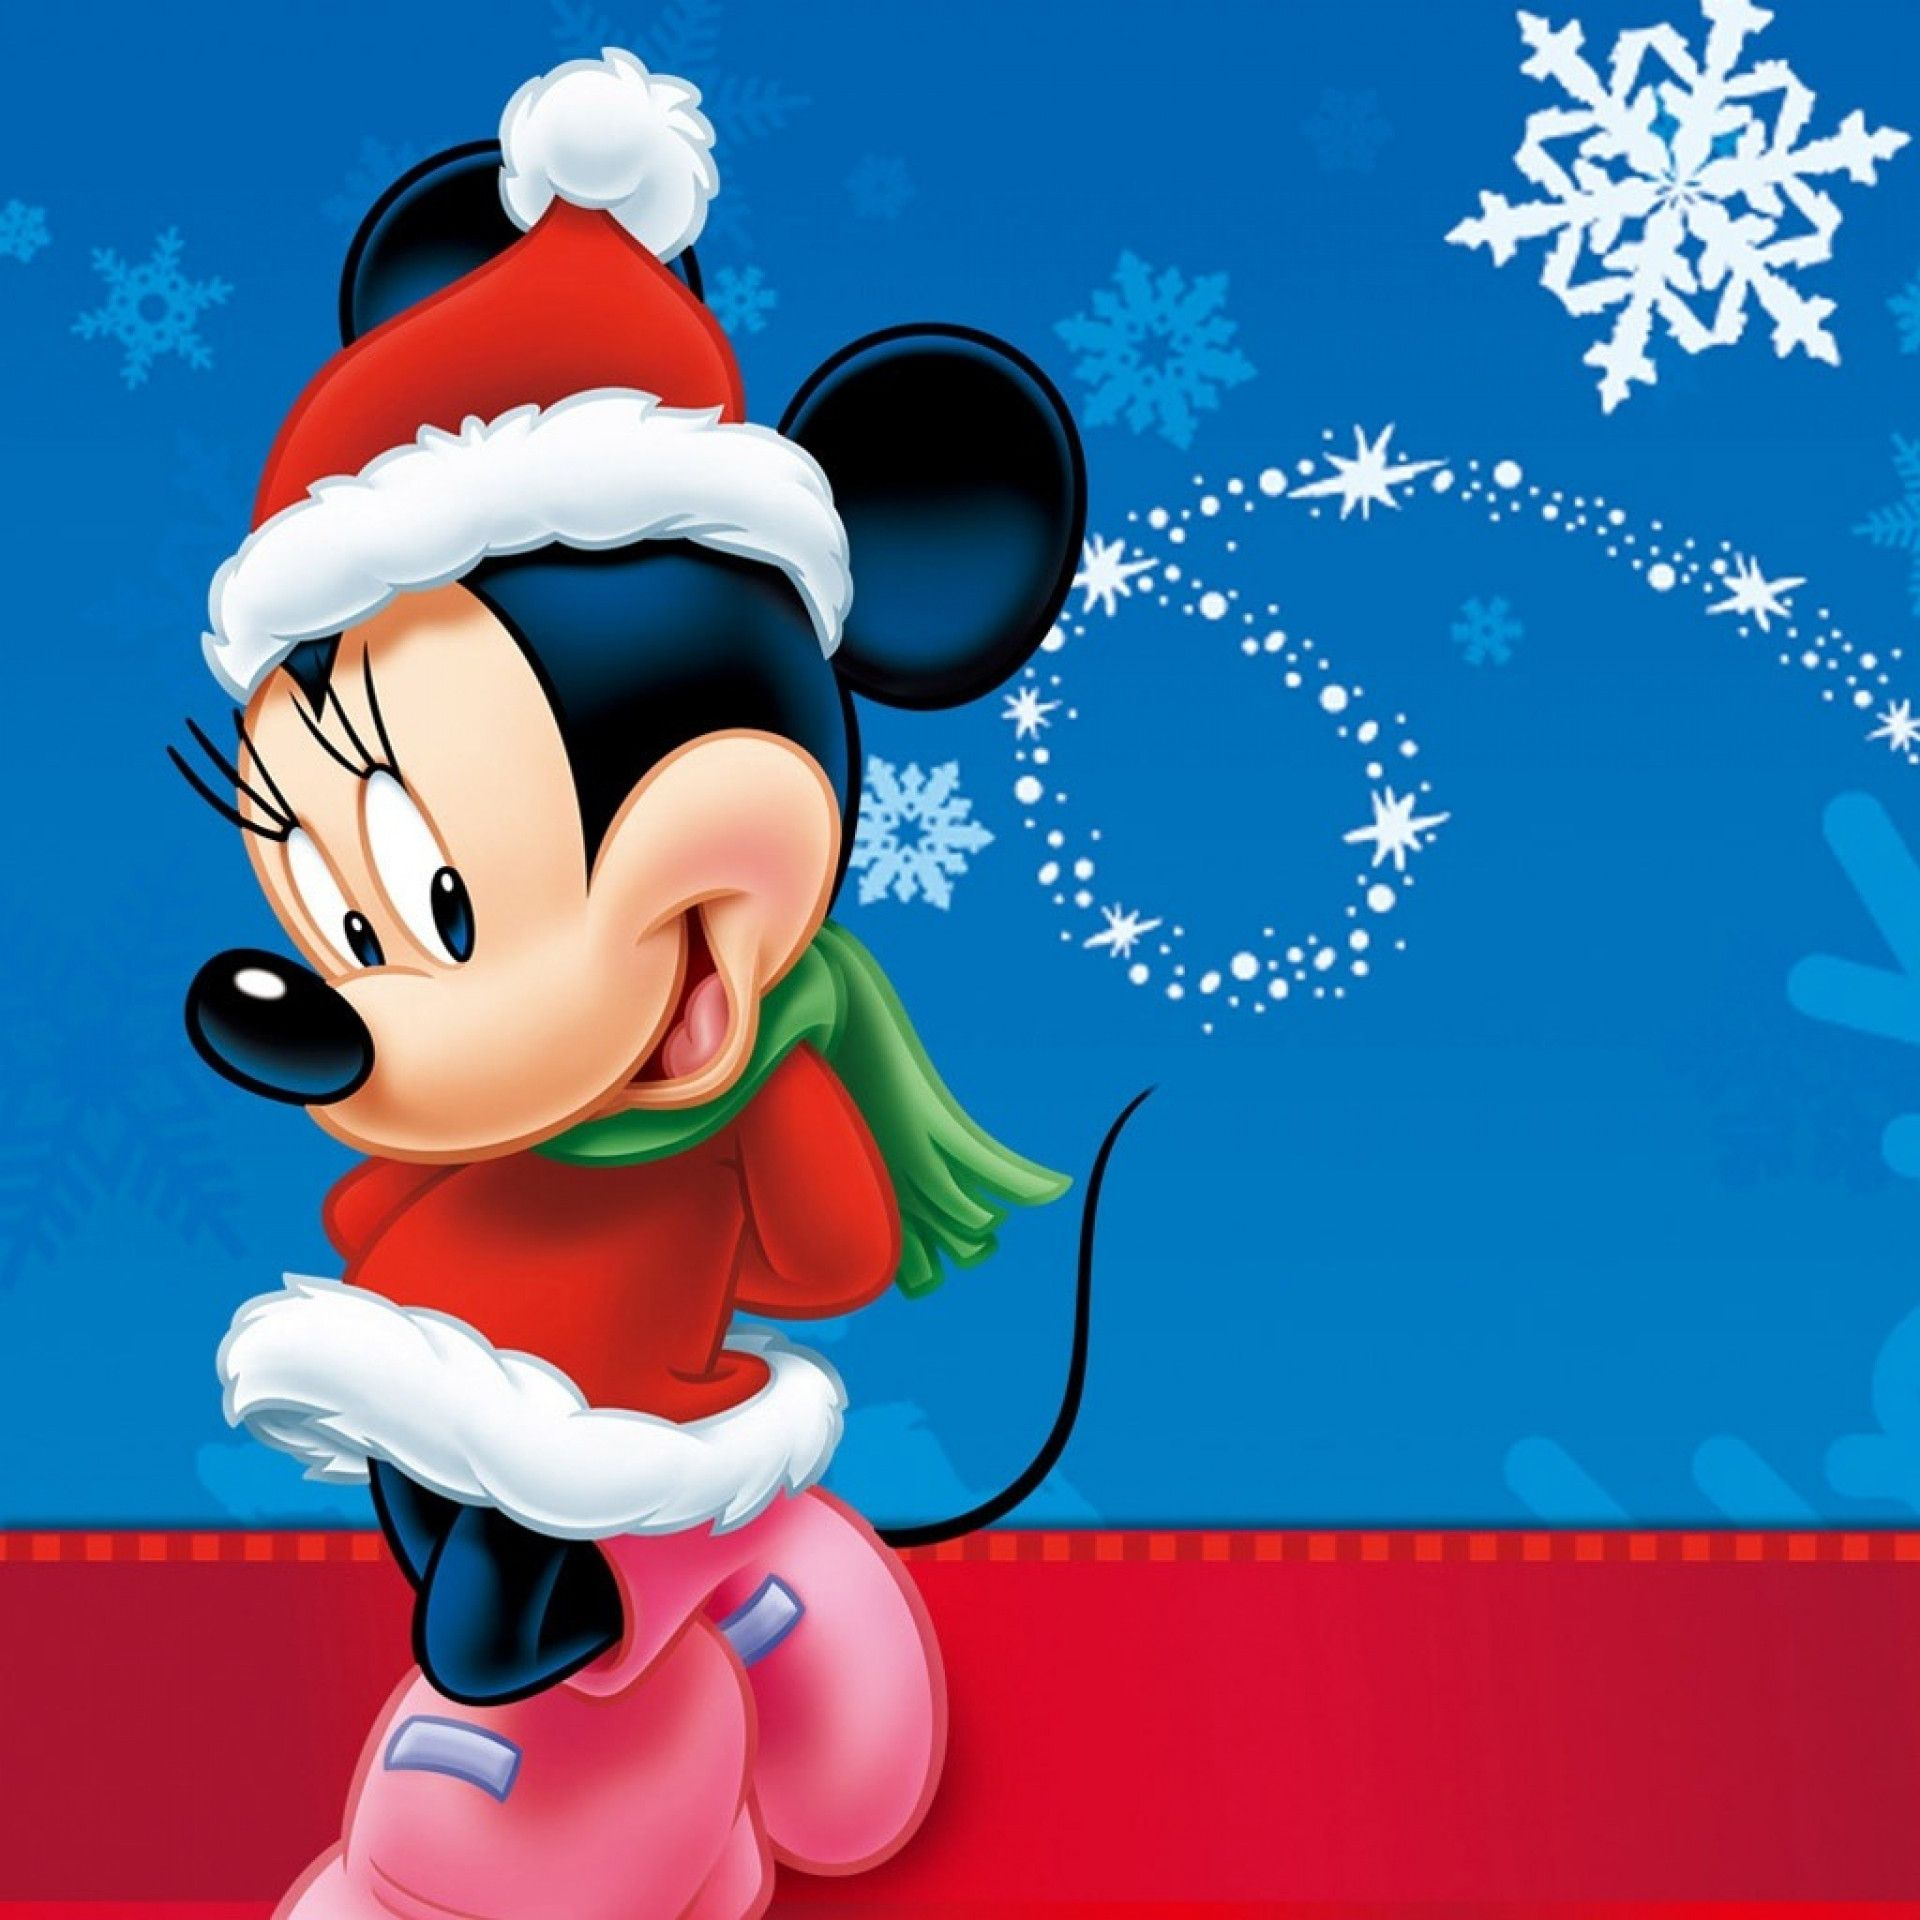 Free Download Mickey Mouse Christmas Wallpaper Car